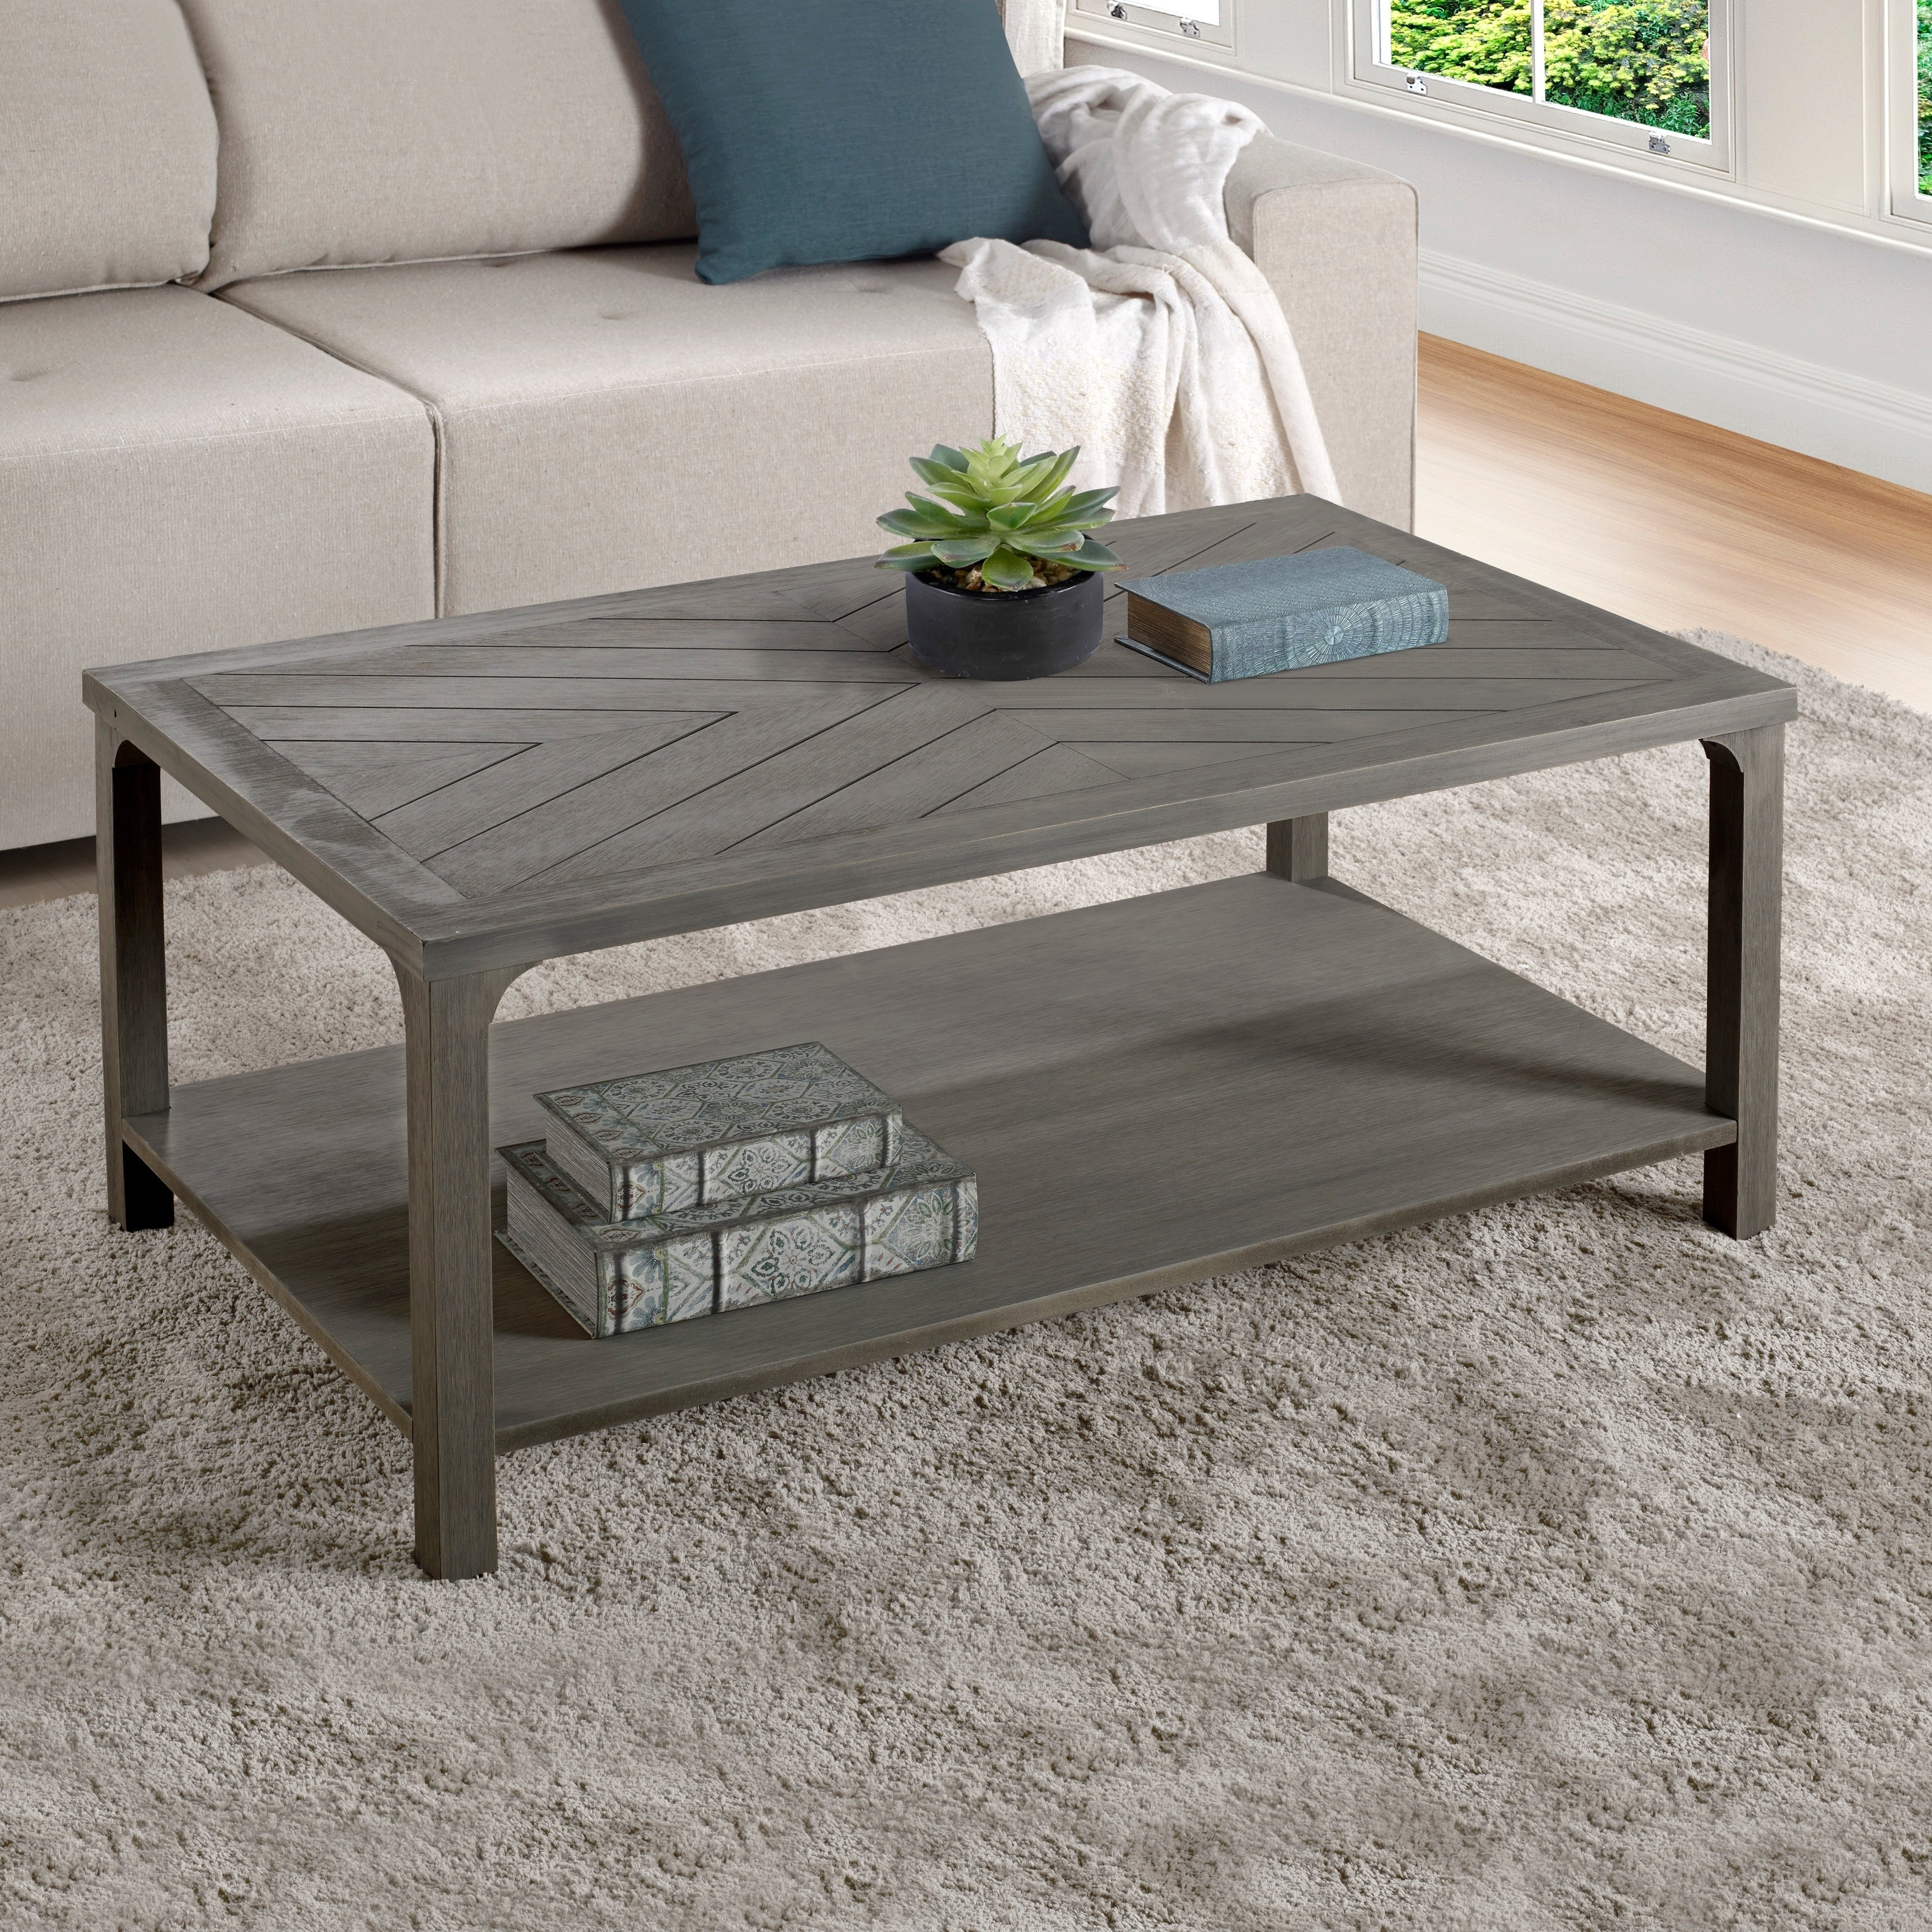 Recent The Gray Barn Kujawa Metal X Coffee Tables – 40 X 22 X 18h With Regard To The Gray Barn Kujawa Chevron Coffee Table – 42 X 24 X 18h (View 16 of 20)